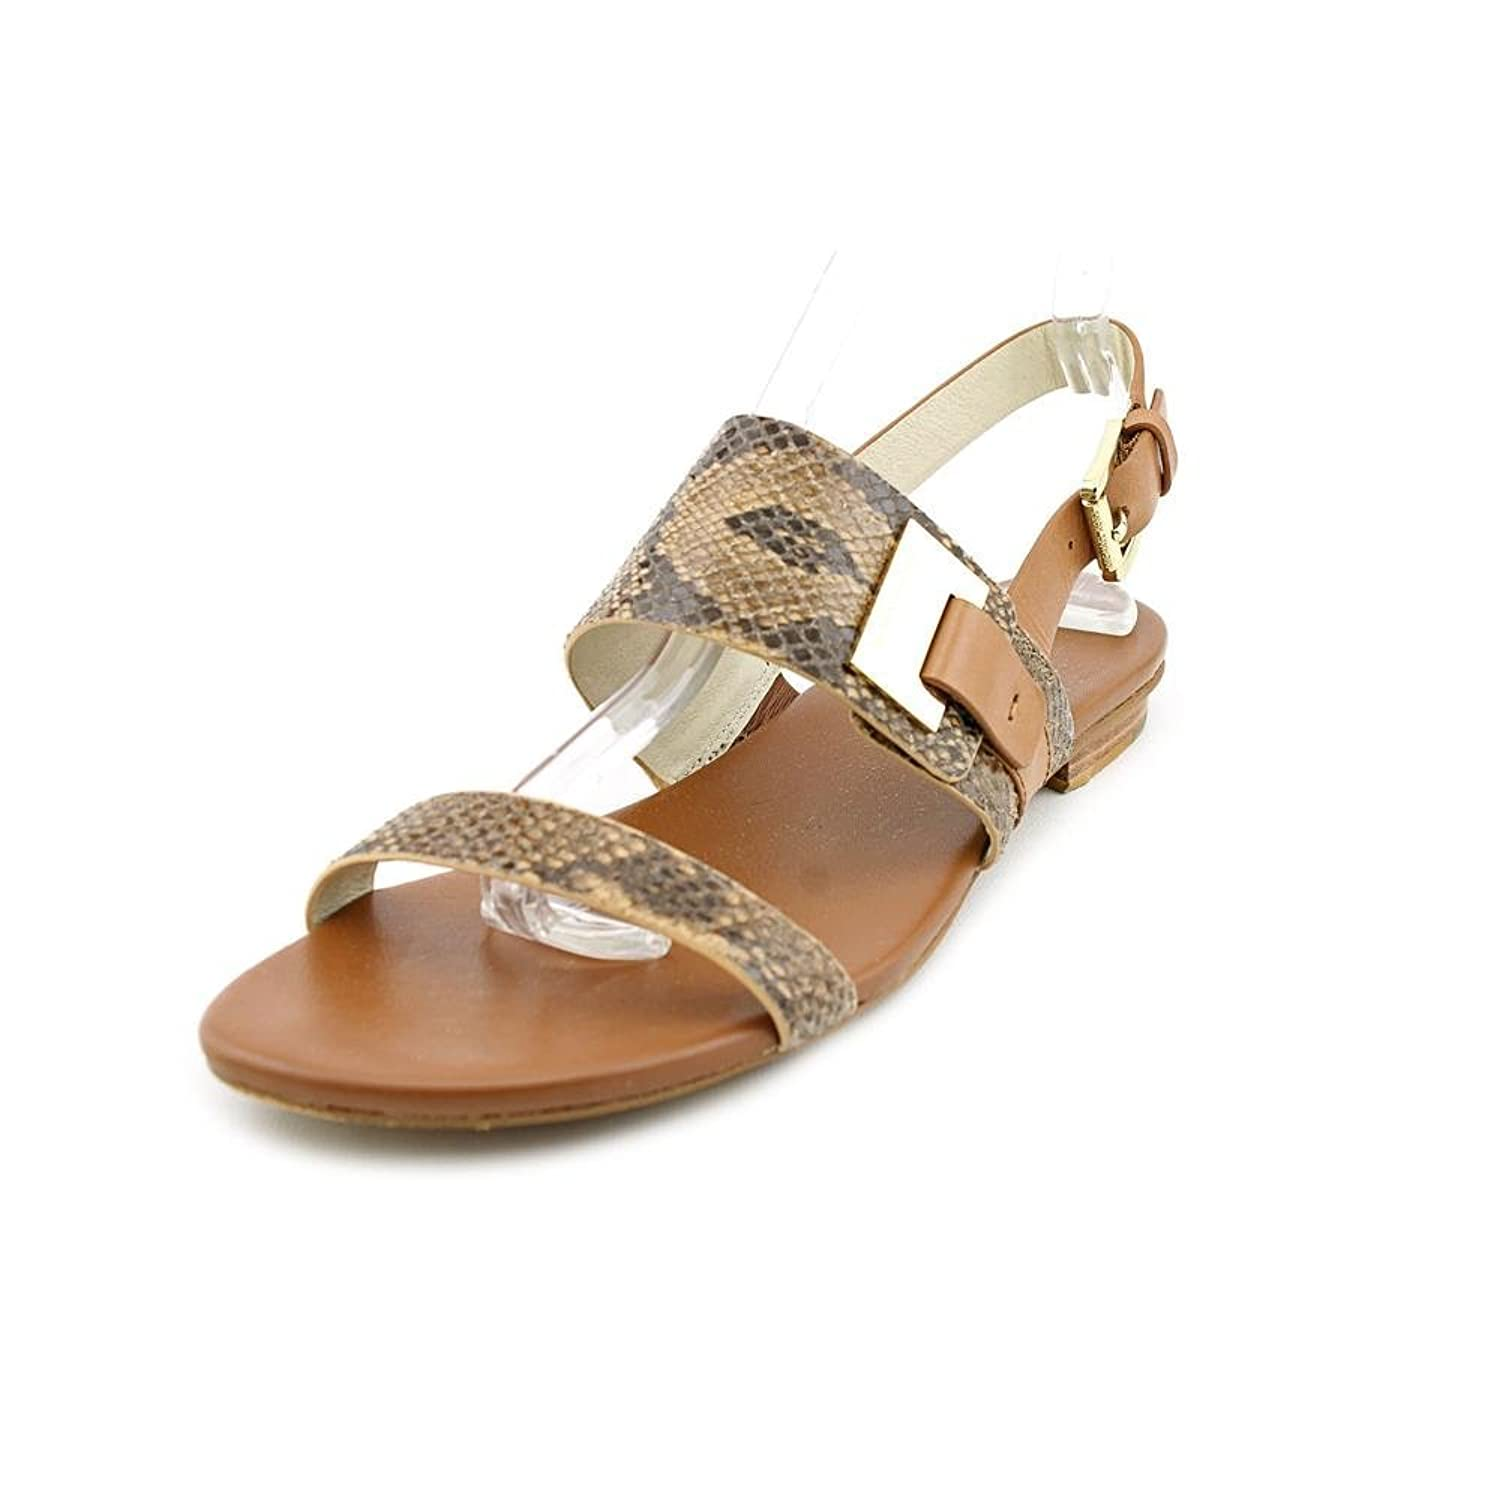 Women's Guiliana Flat Sandal Leather Sand 6M